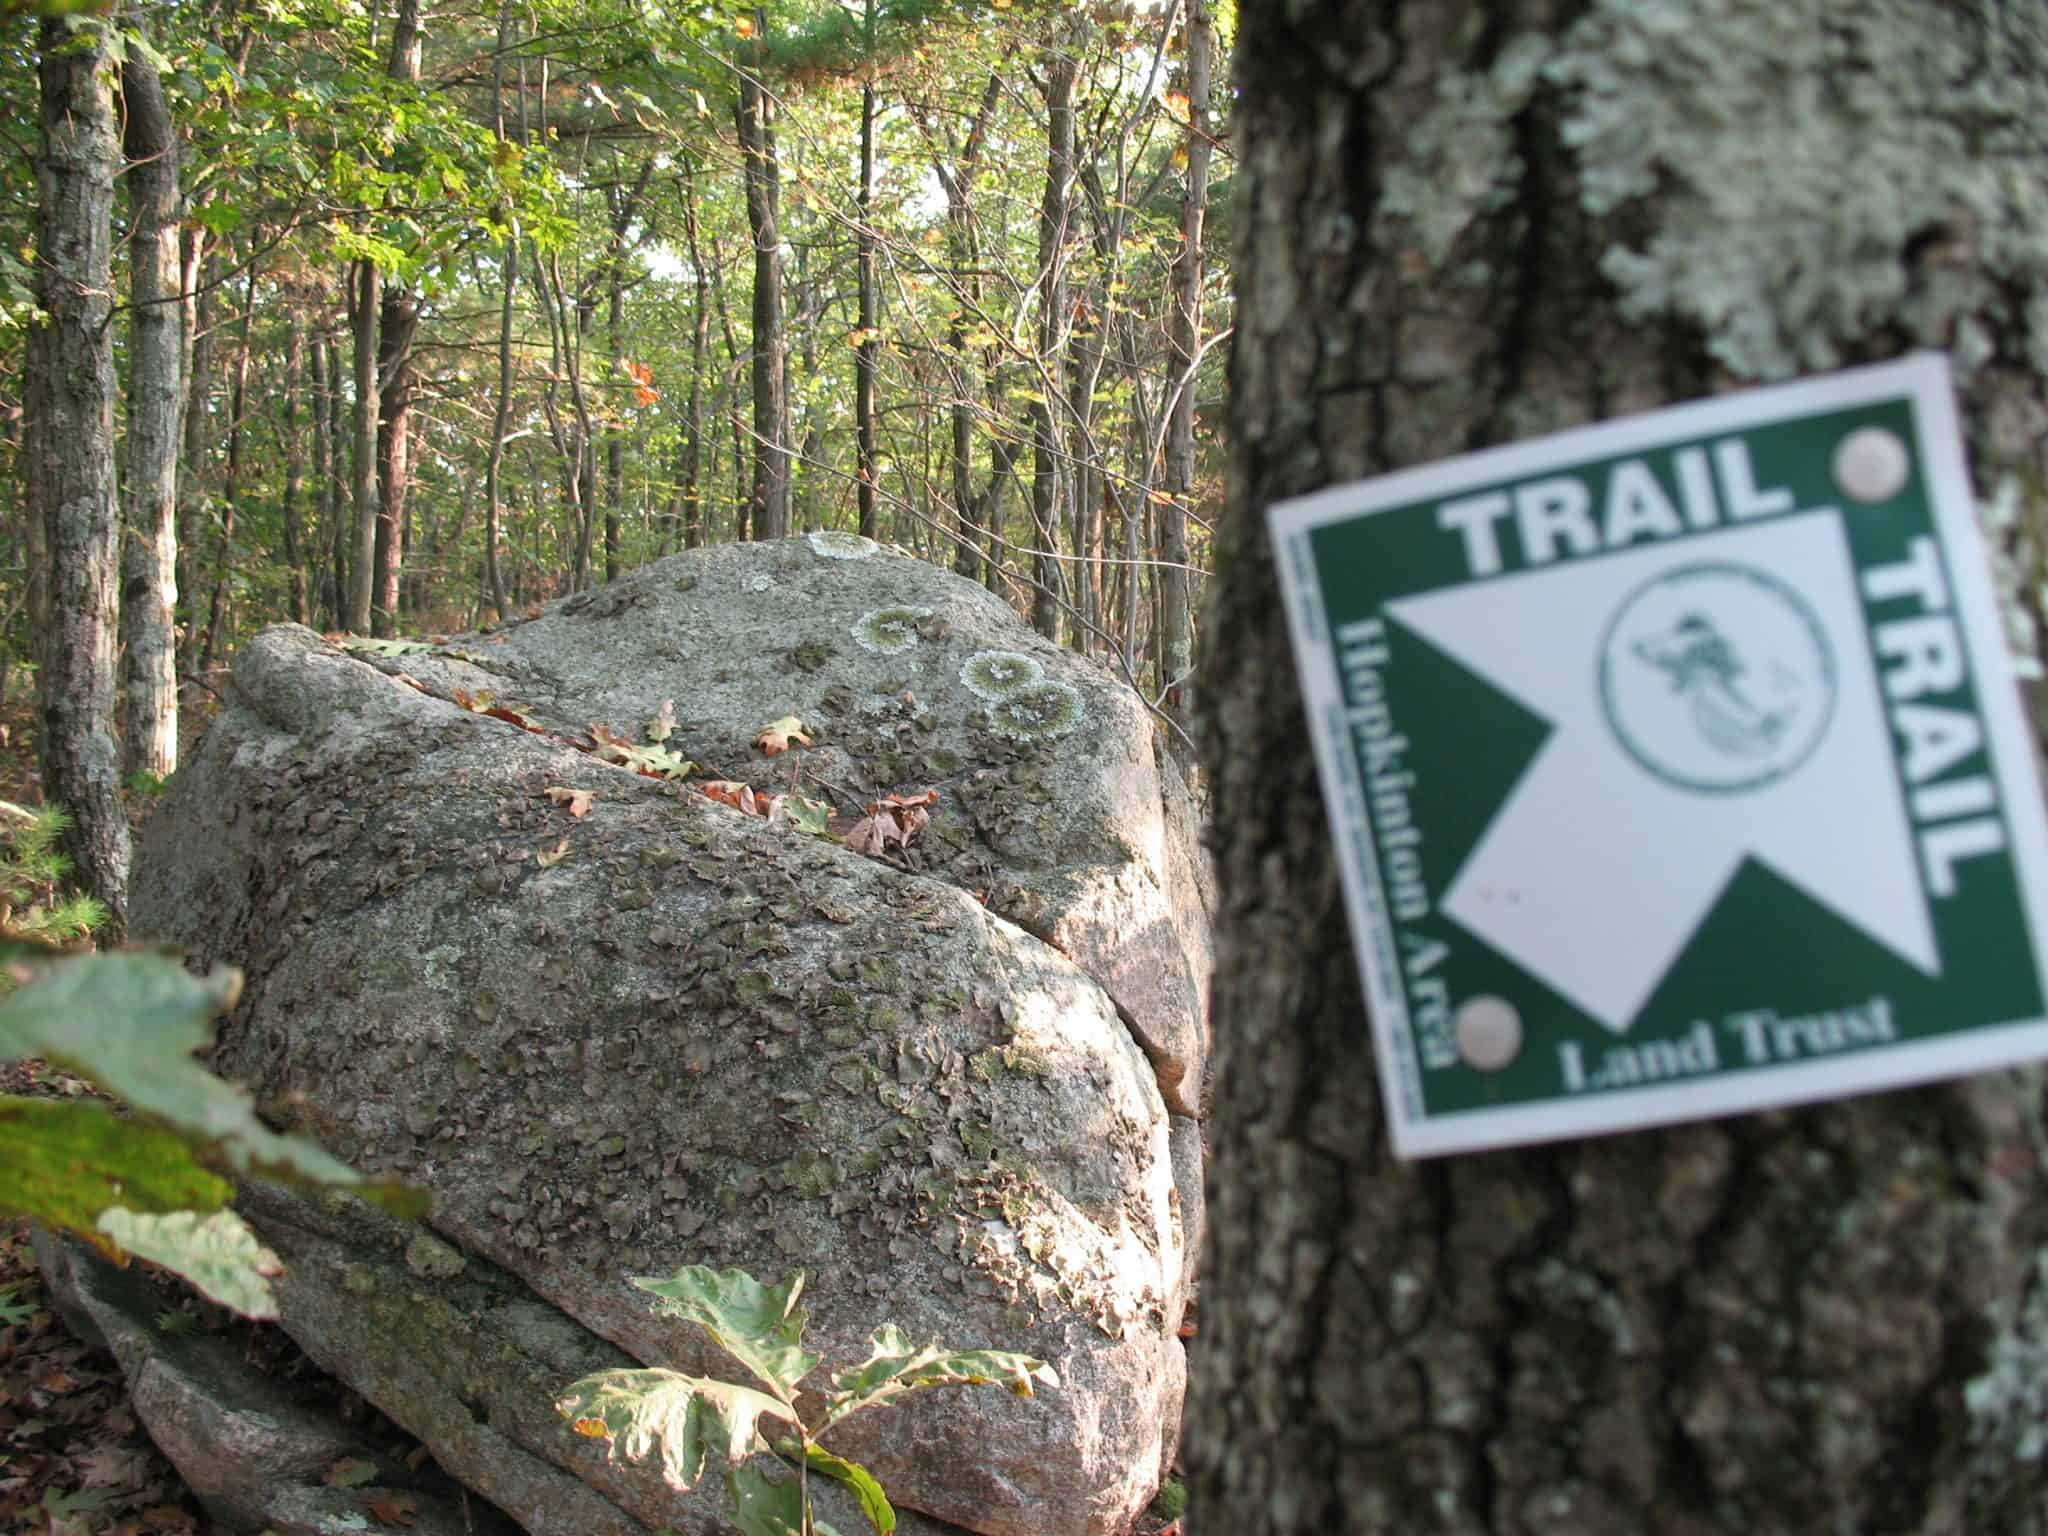 Image of trail